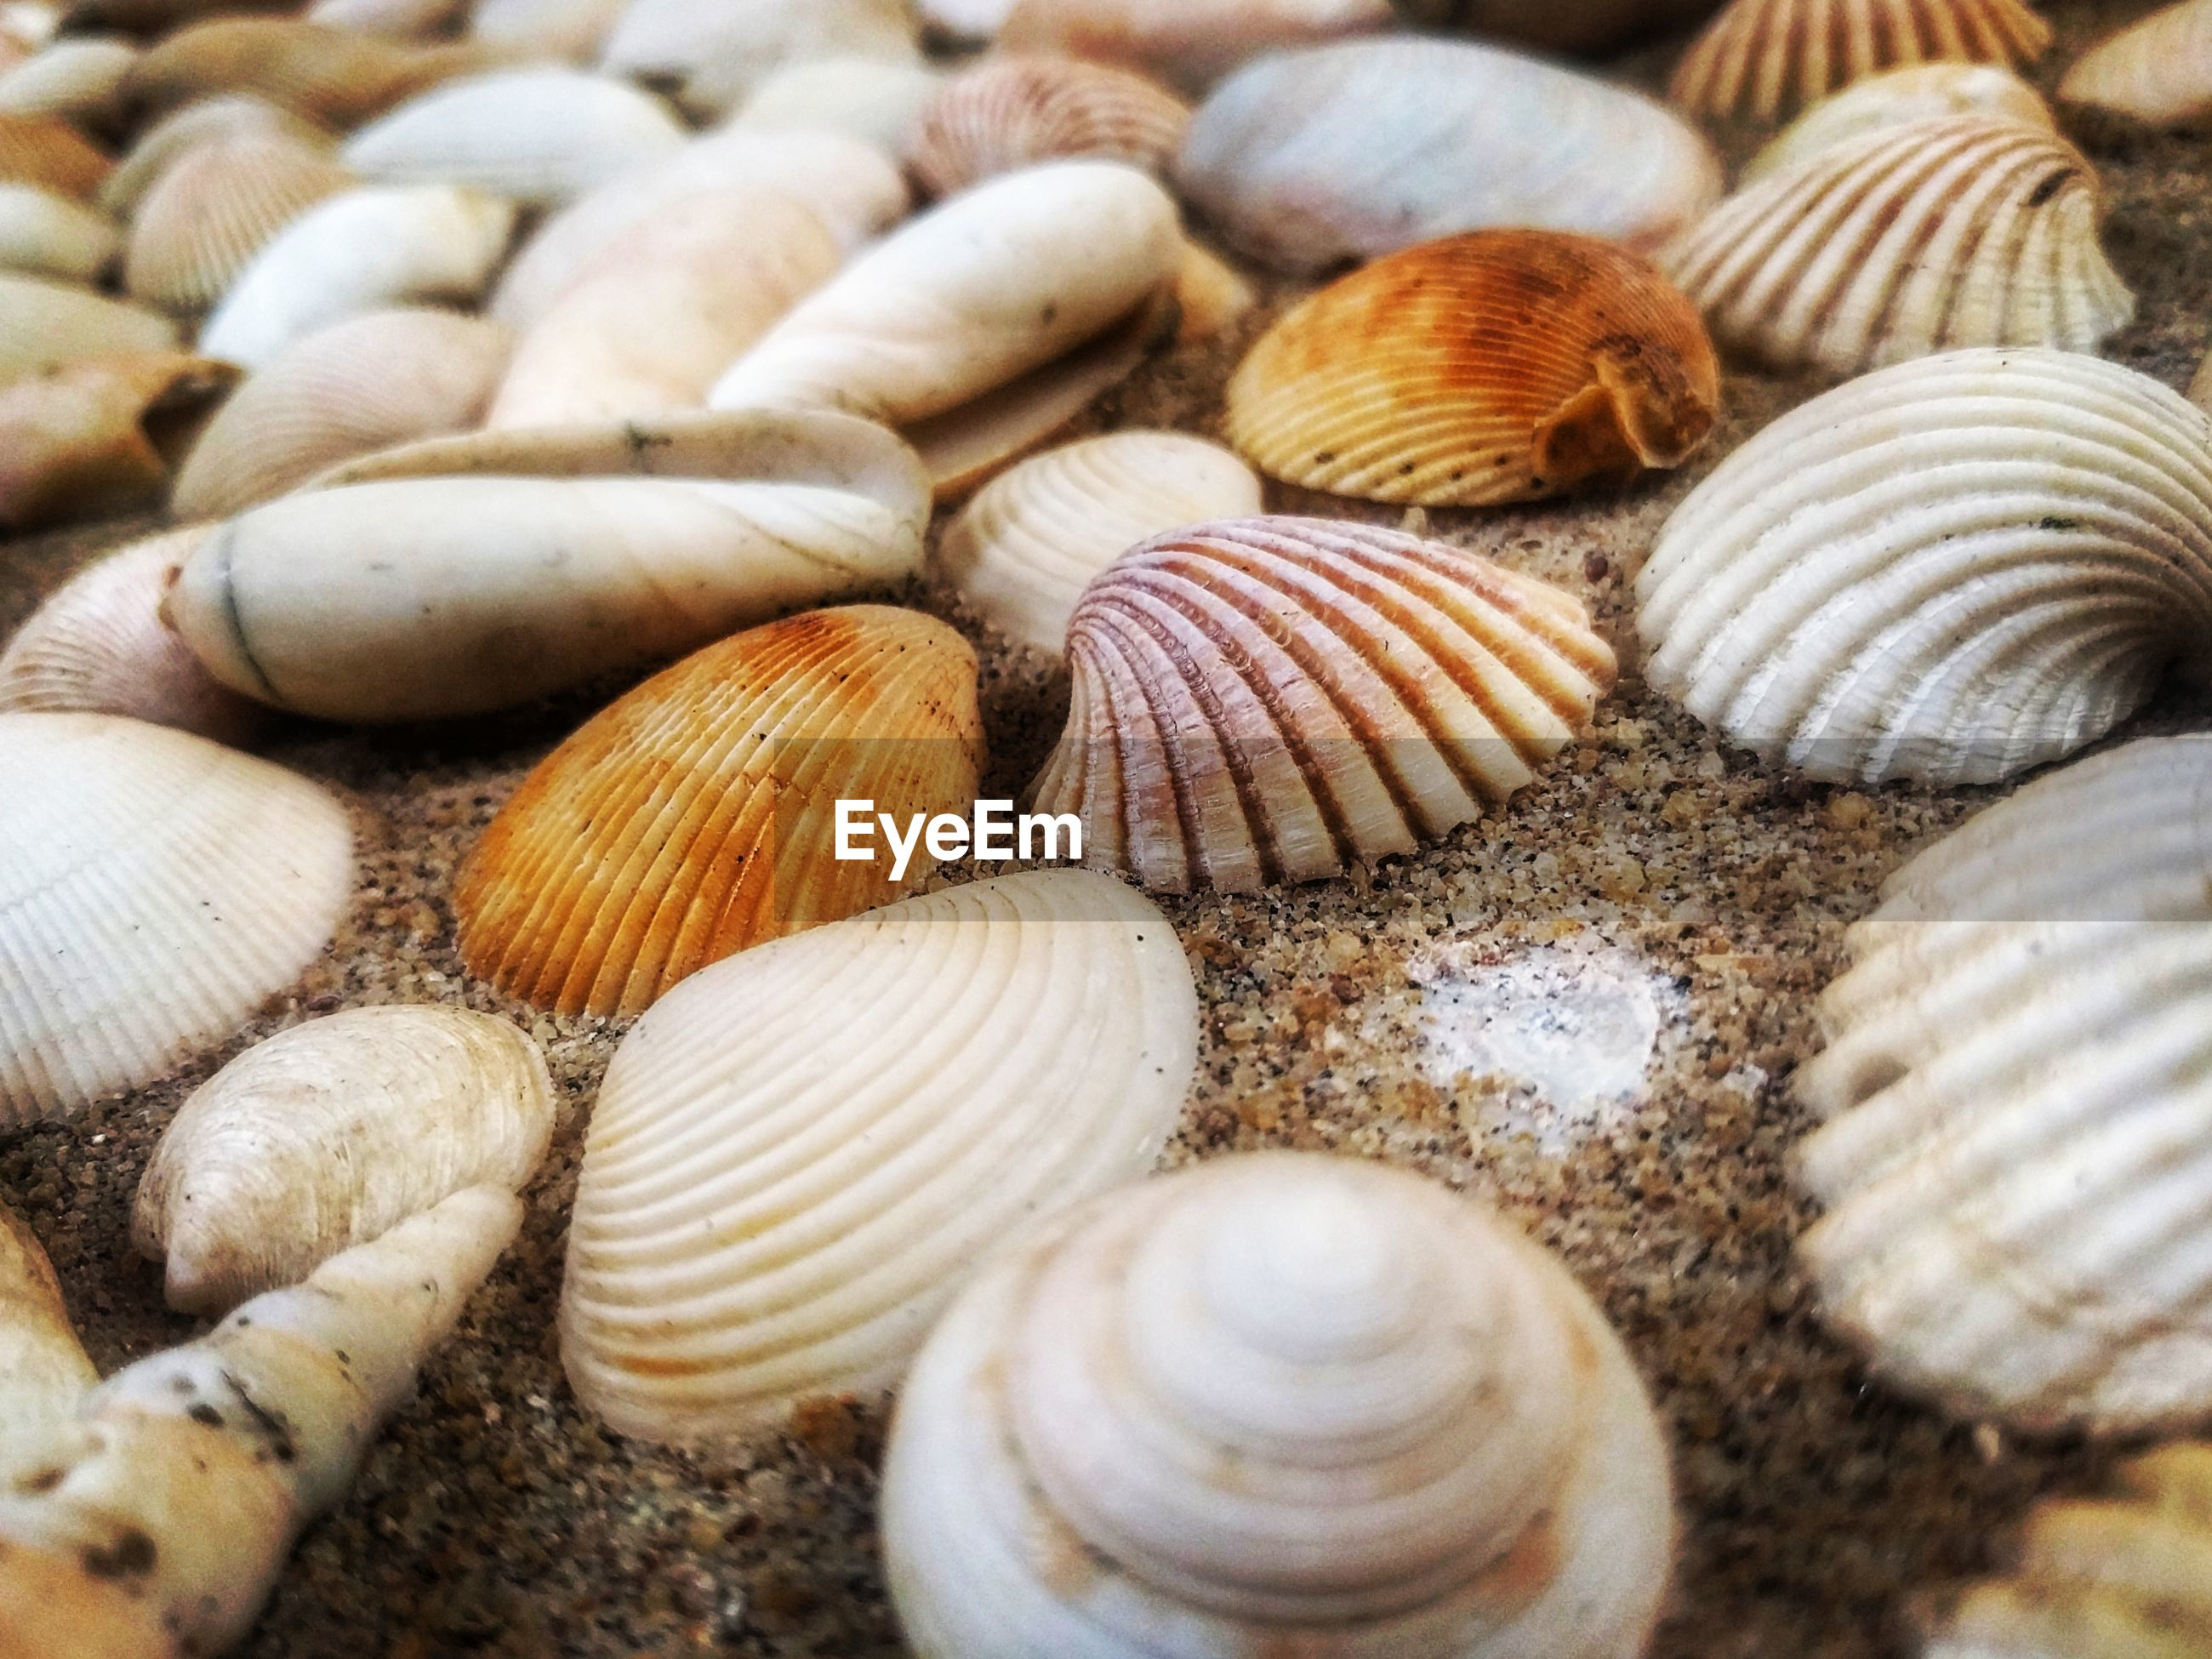 large group of objects, abundance, clam, backgrounds, seashell, high angle view, full frame, scallop, no people, outdoors, close-up, day